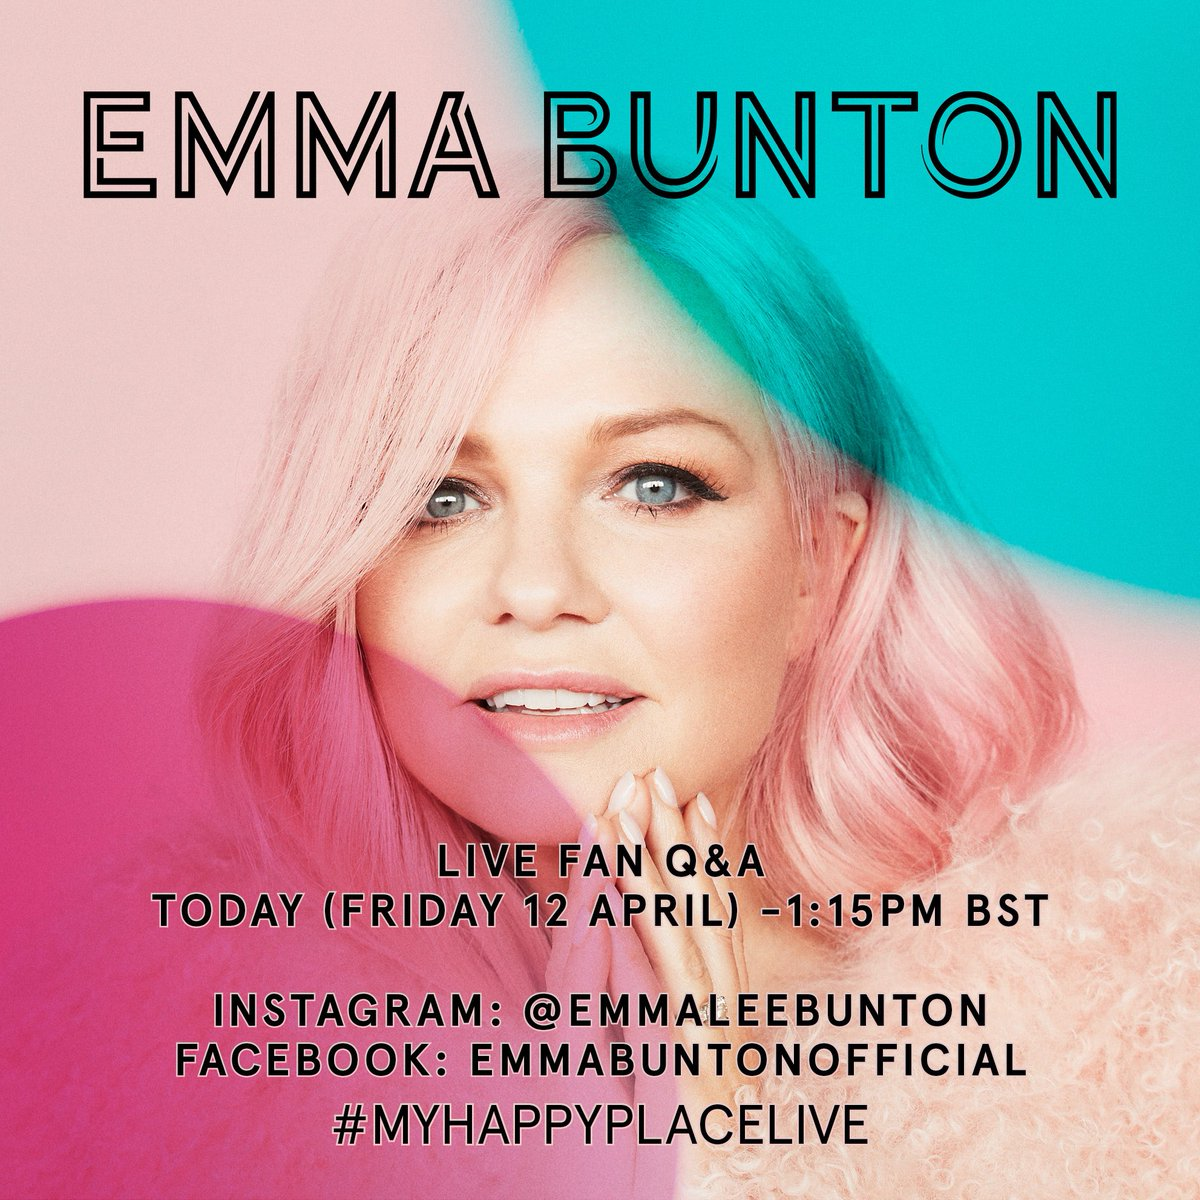 Head over to my Instagram And Facebook pages now to join in with the Live Fan Q&A! #MyHappyPlaceLive ✌???????? https://t.co/TbbdFquZsw